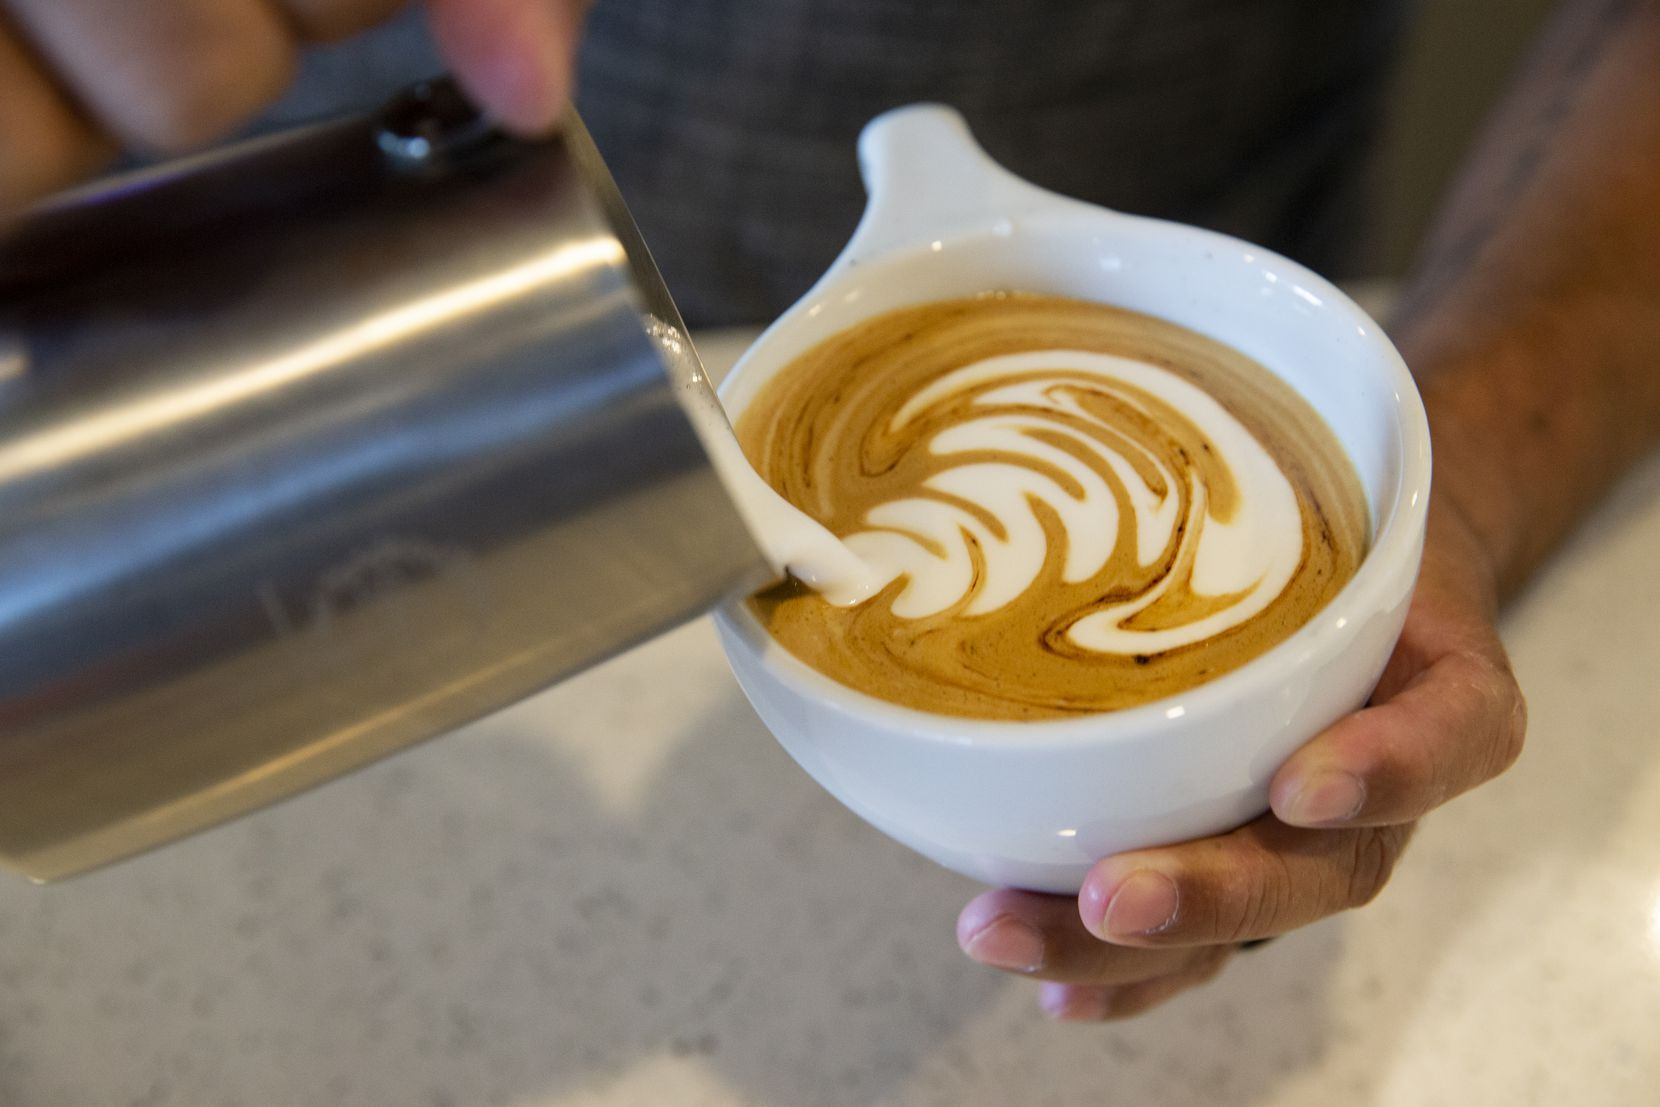 Angelo Europe makes a Micah Mocha at Grounds & Gold Coffee Co. on Sept. 14, 2020 in Arlington.